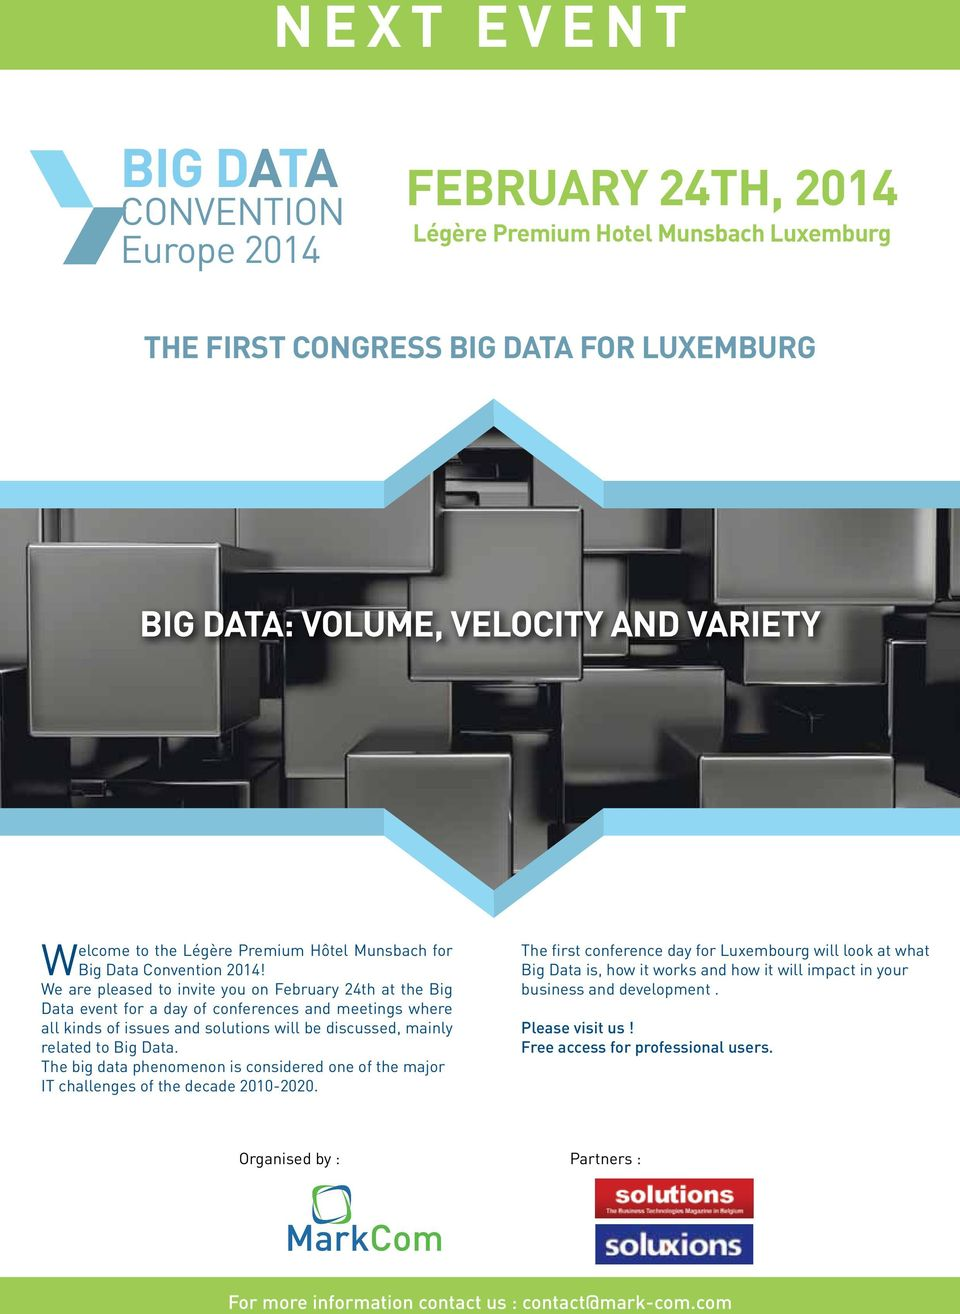 We are pleased to invite you on February 24th at the Big Data event for a day of conferences and meetings where all kinds of issues and solutions will be discussed, mainly related to Big Data.